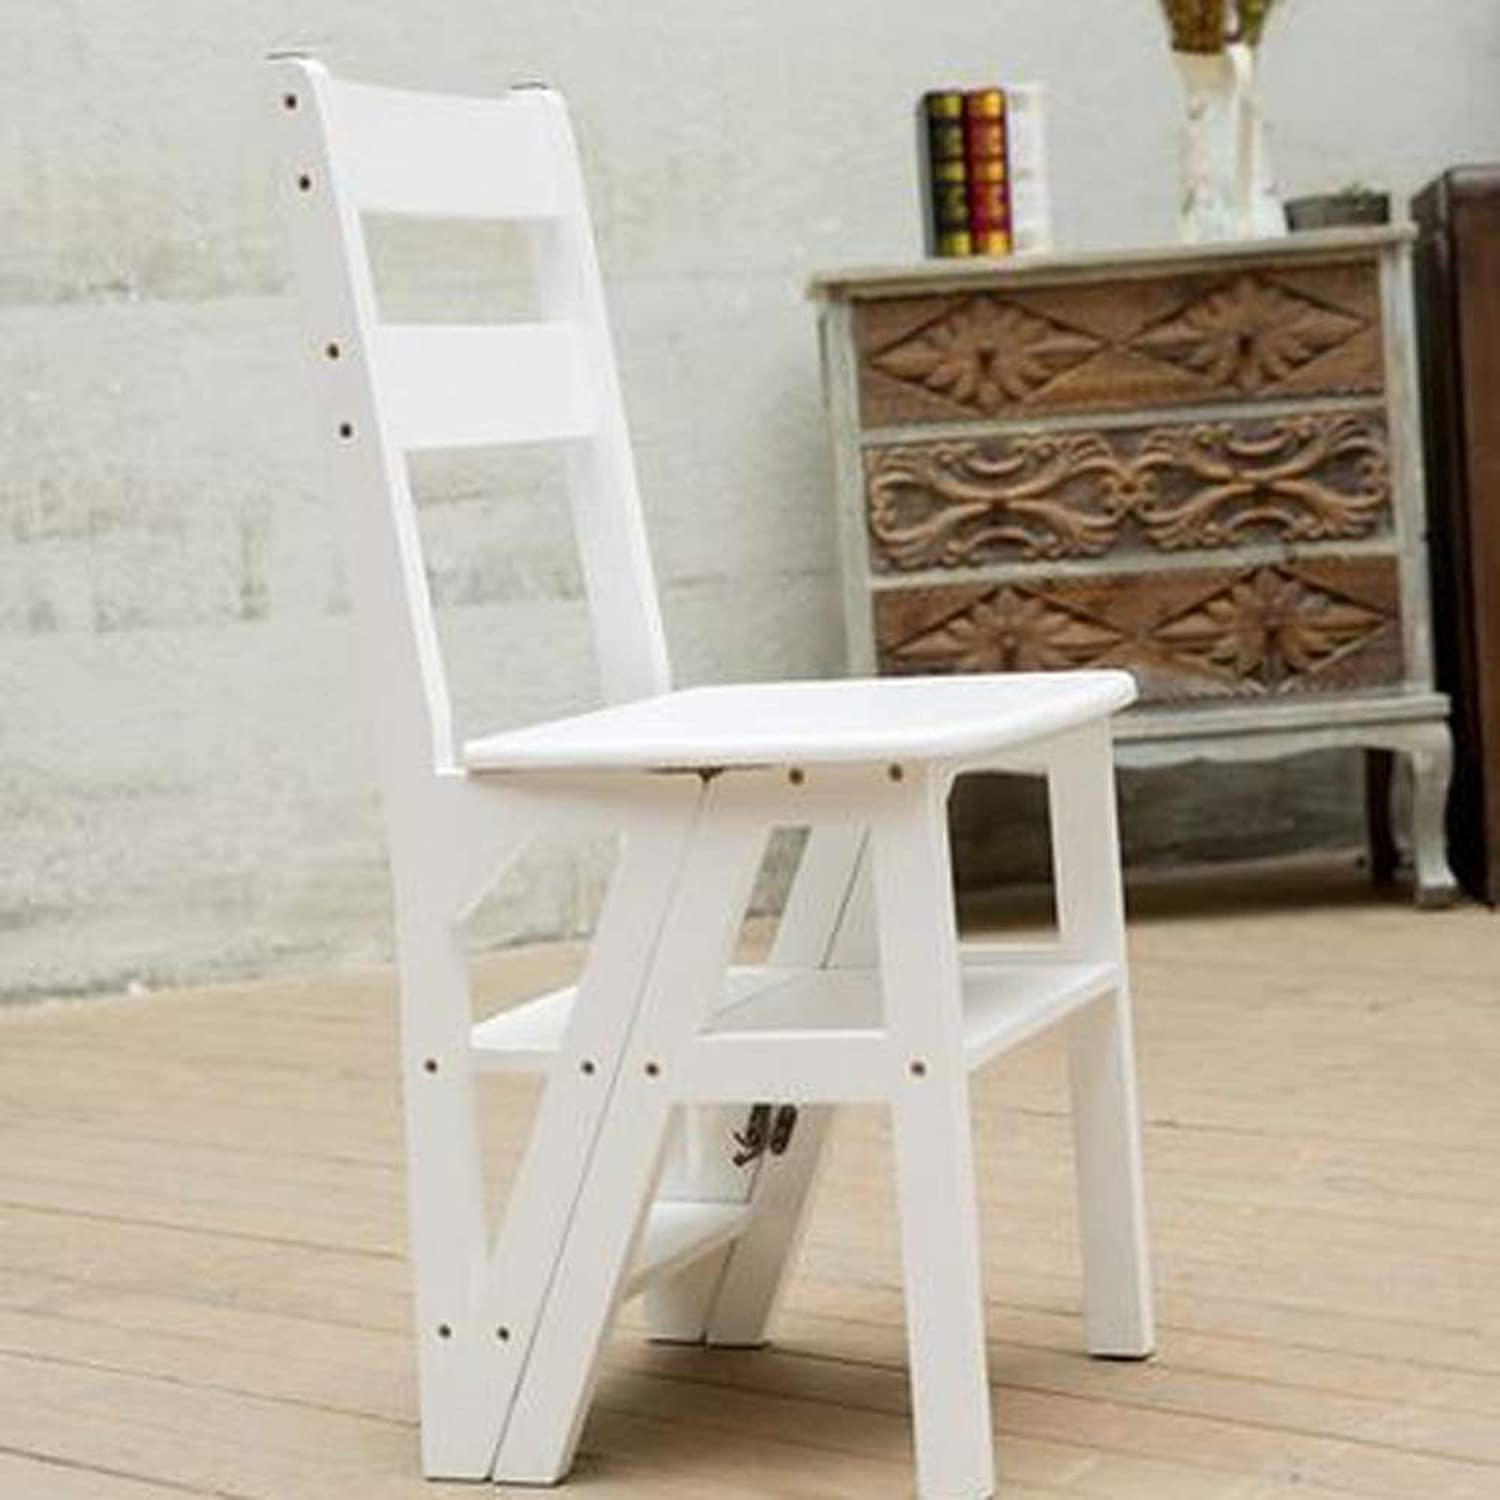 Stepstools Natural Wood Multi-Functional Congreenible Folding Library Ladder Chair Four-Step Stool 35x18.1x15.7inches (color   White)